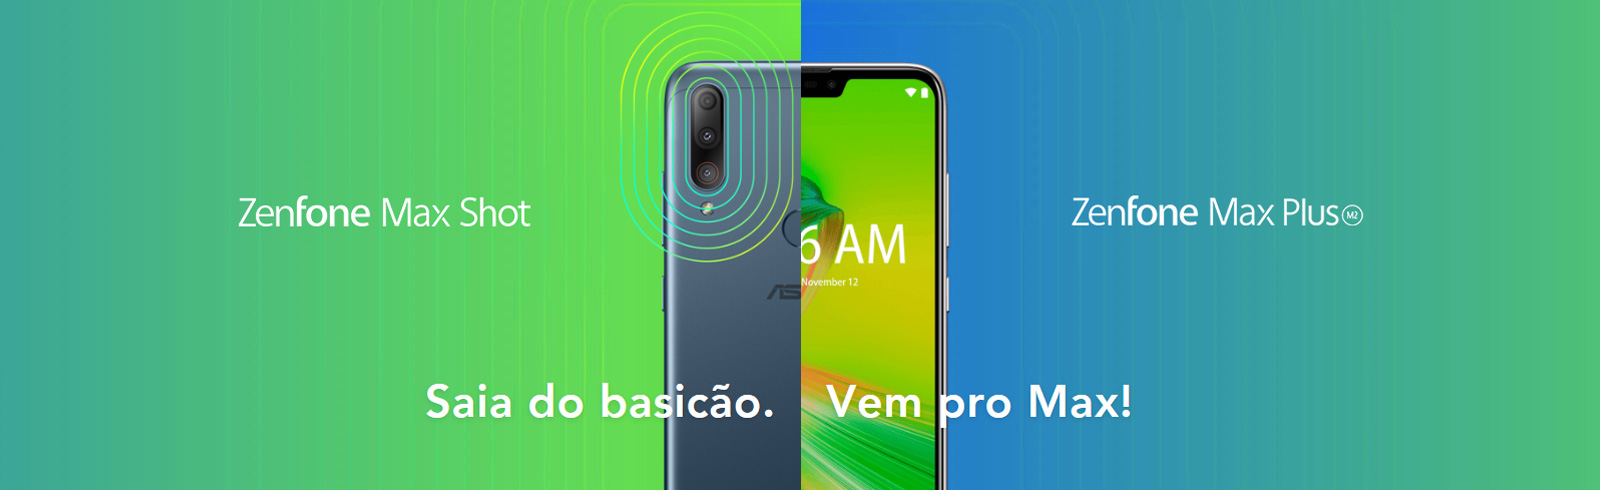 Asus launches the ZenFone Max Shot and ZenFone Max Plus (M2) in Brazil